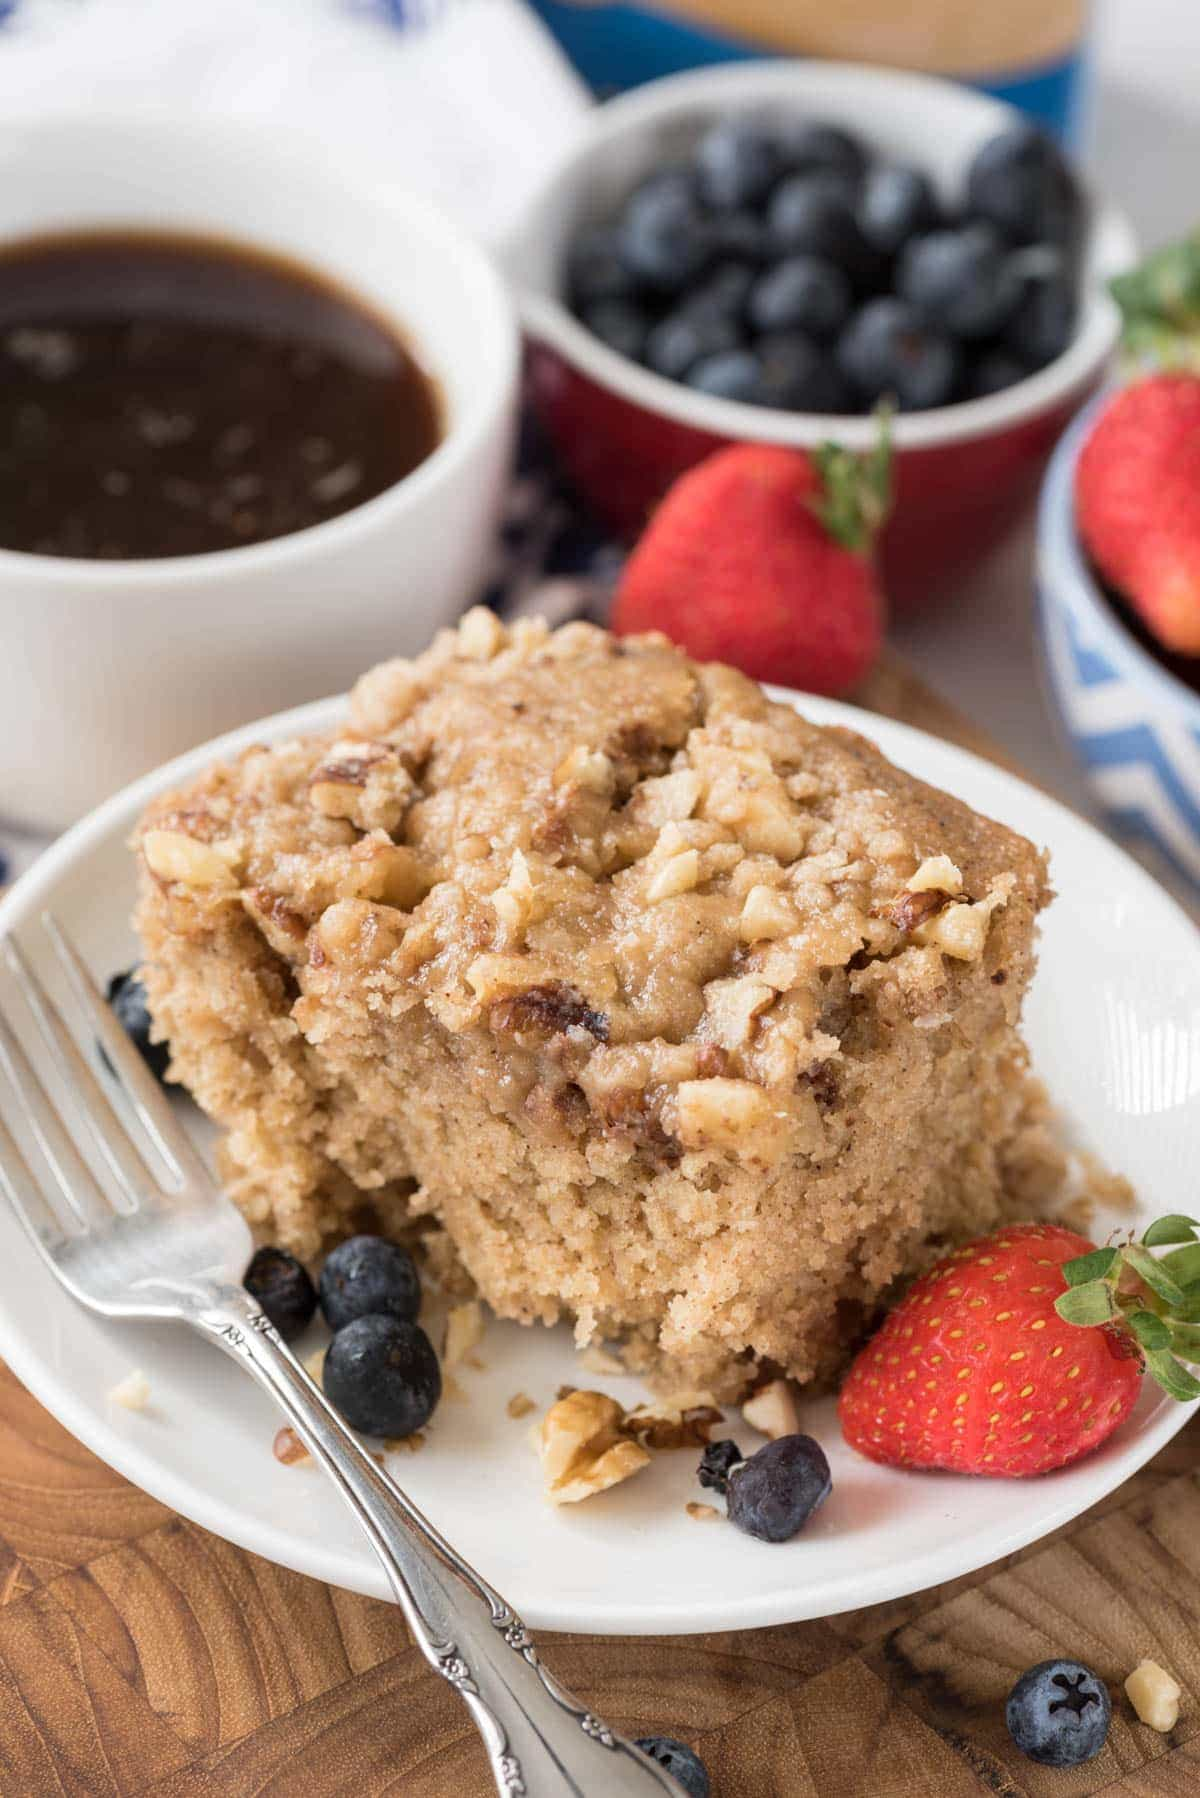 Slow Cooker Coffee Cake - this easy coffee cake is totally happening for Easter or Mother's Day brunch!